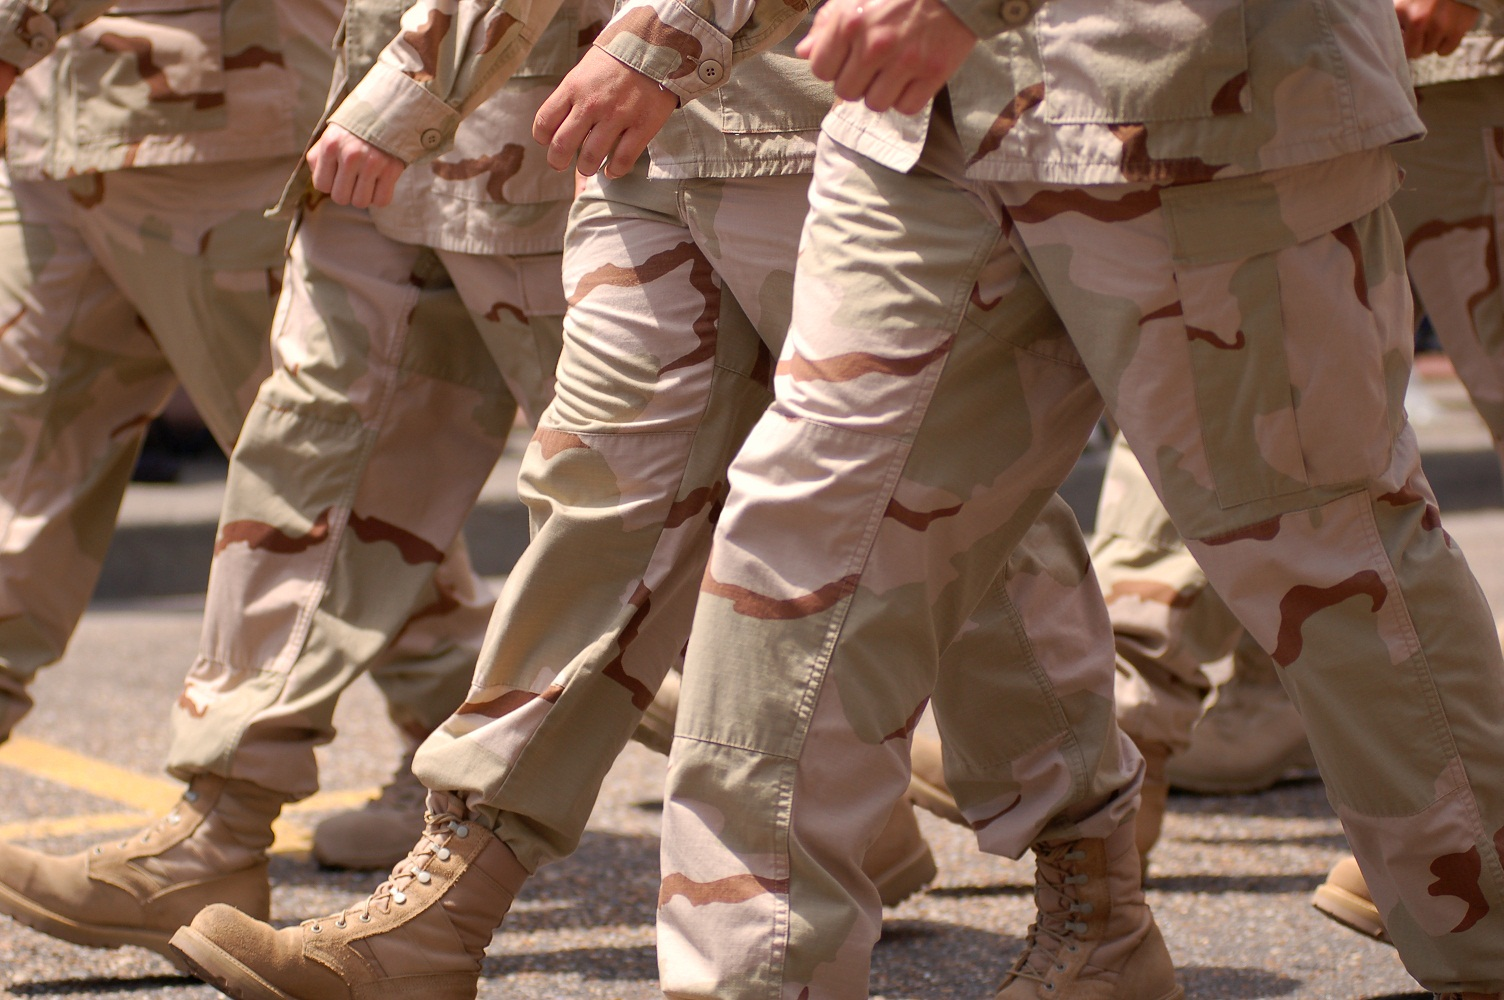 Gulf War soldiers marching